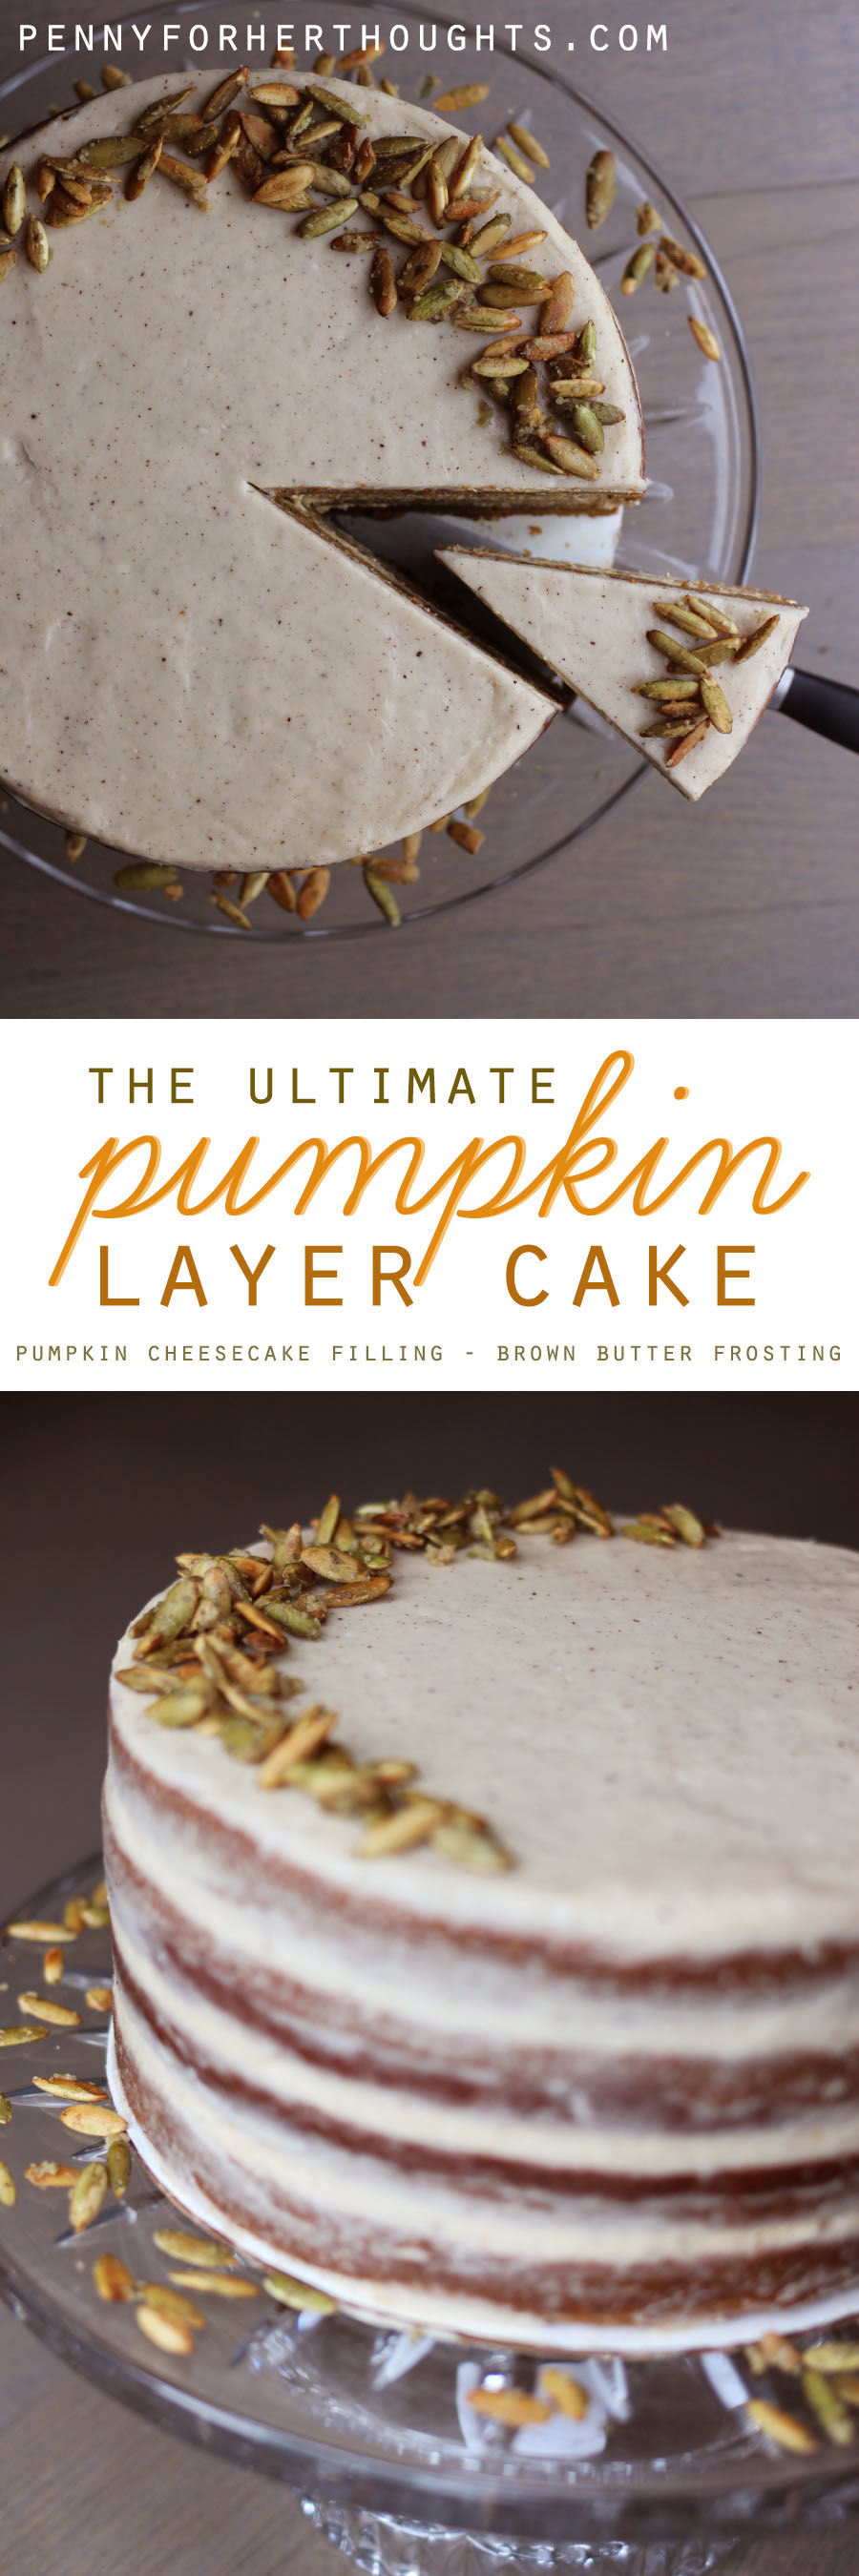 The Ultimate Pumpkin Layer Cake: Brown Butter Frosting and Cheesecake Filling